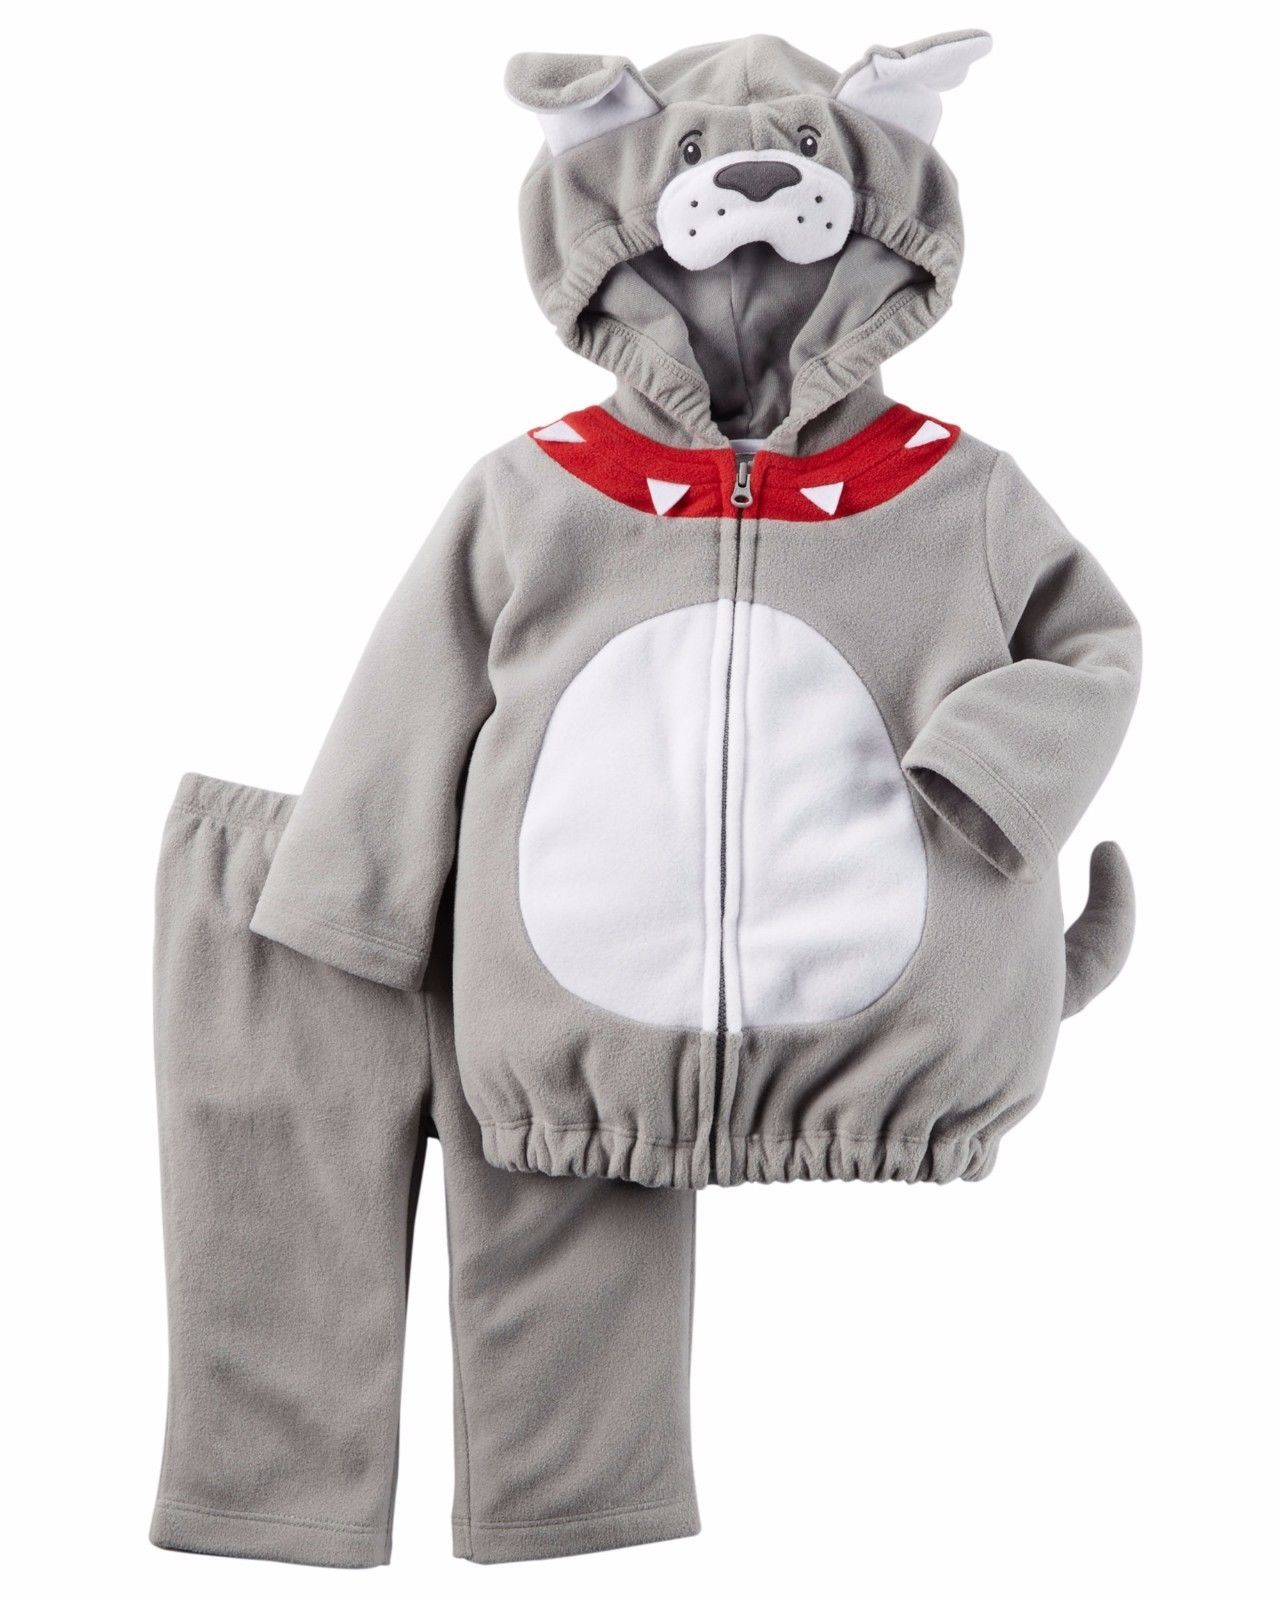 NEW NWT Boys Carter's Halloween Bulldog Costume 12 Months 2 Piece Dog